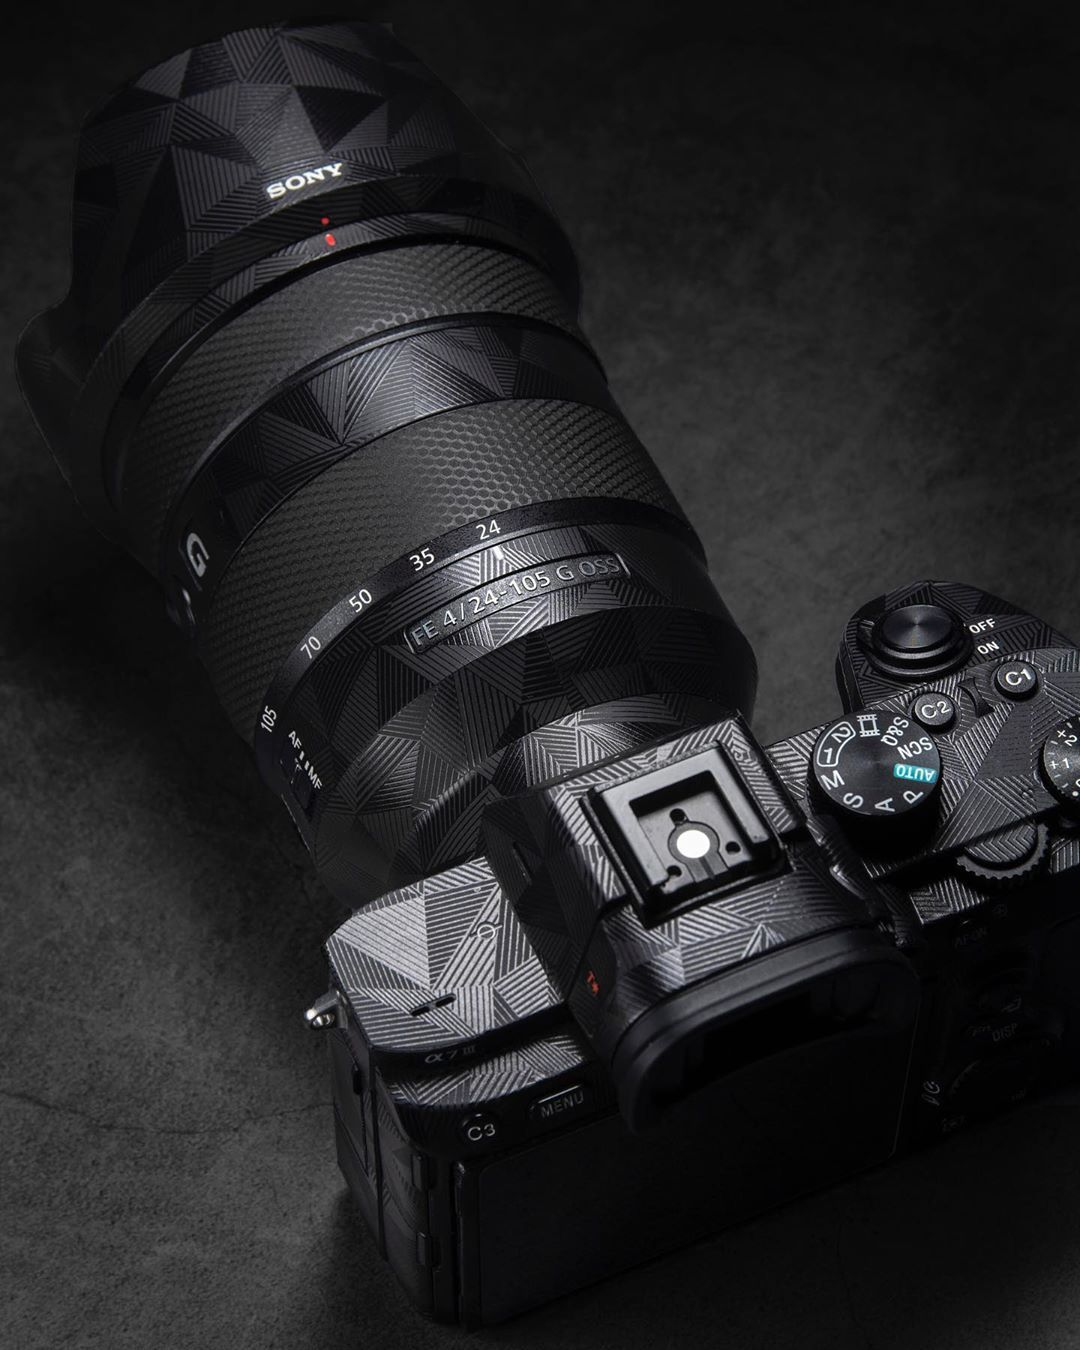 The Sony FE 24105mm f/4 G OSS lens paired with the A7iii